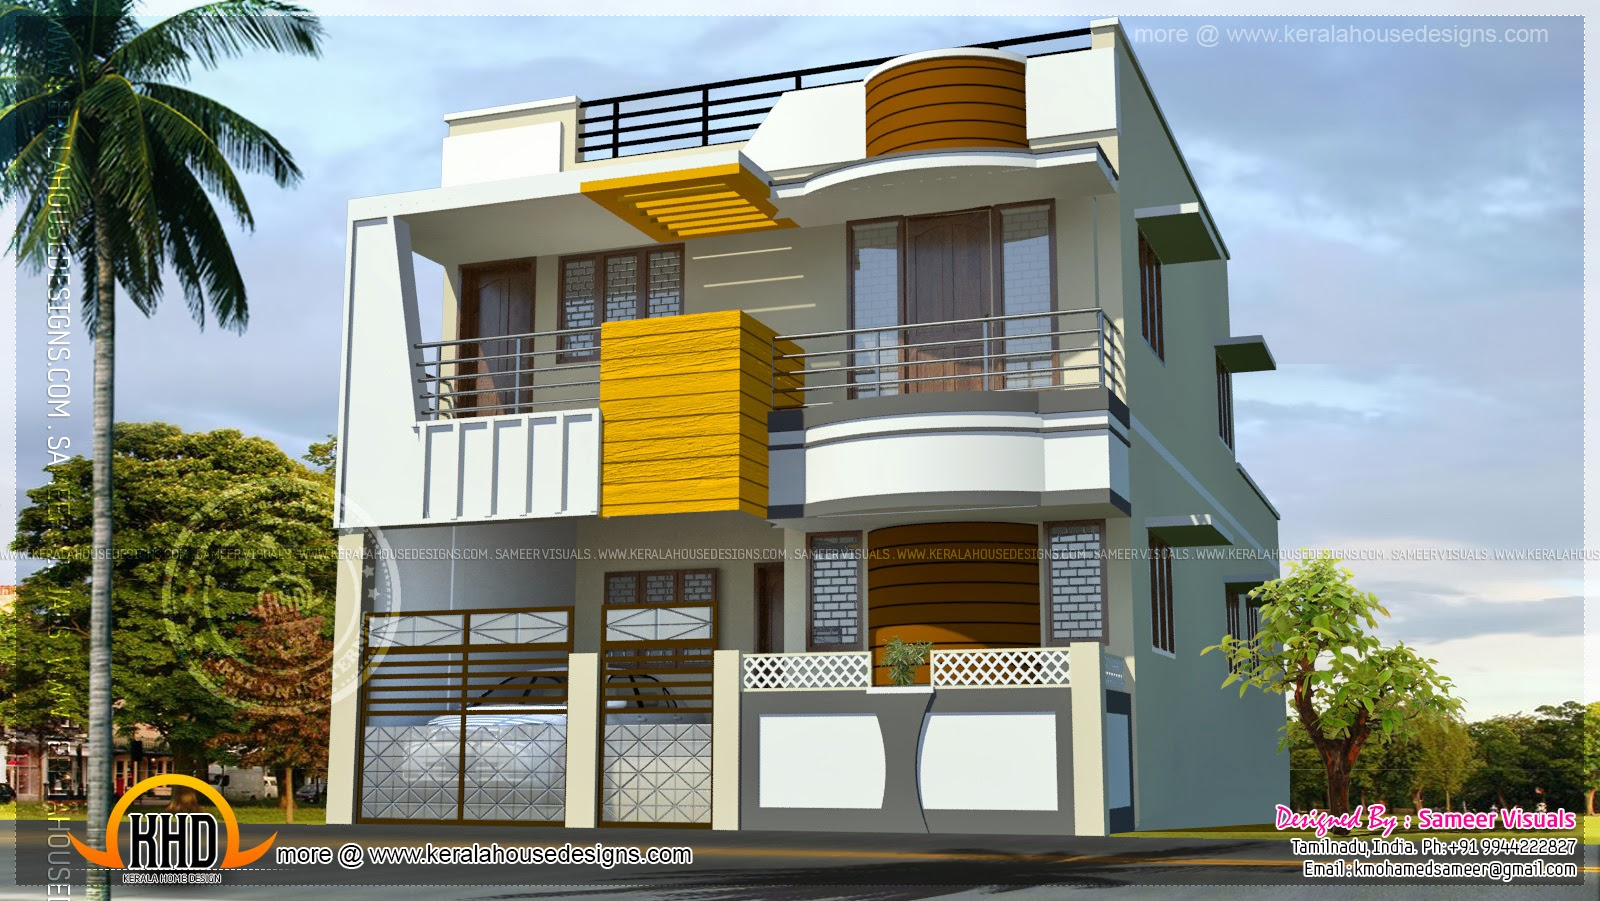 Double storied modern south indian home kerala home Small indian home designs photos